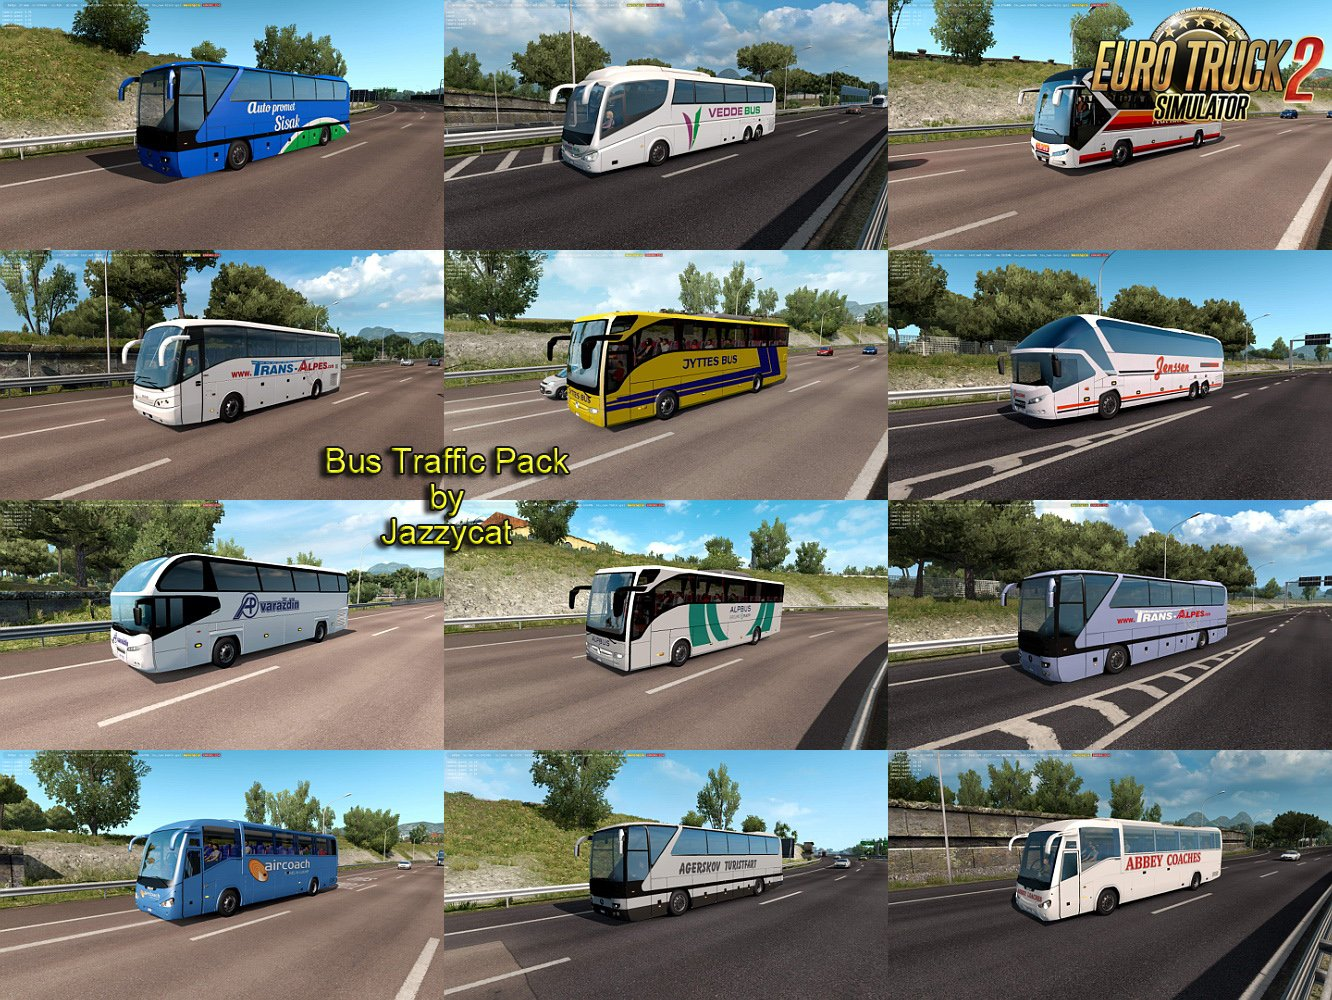 Bus Traffic Pack v5.4 by Jazzycat